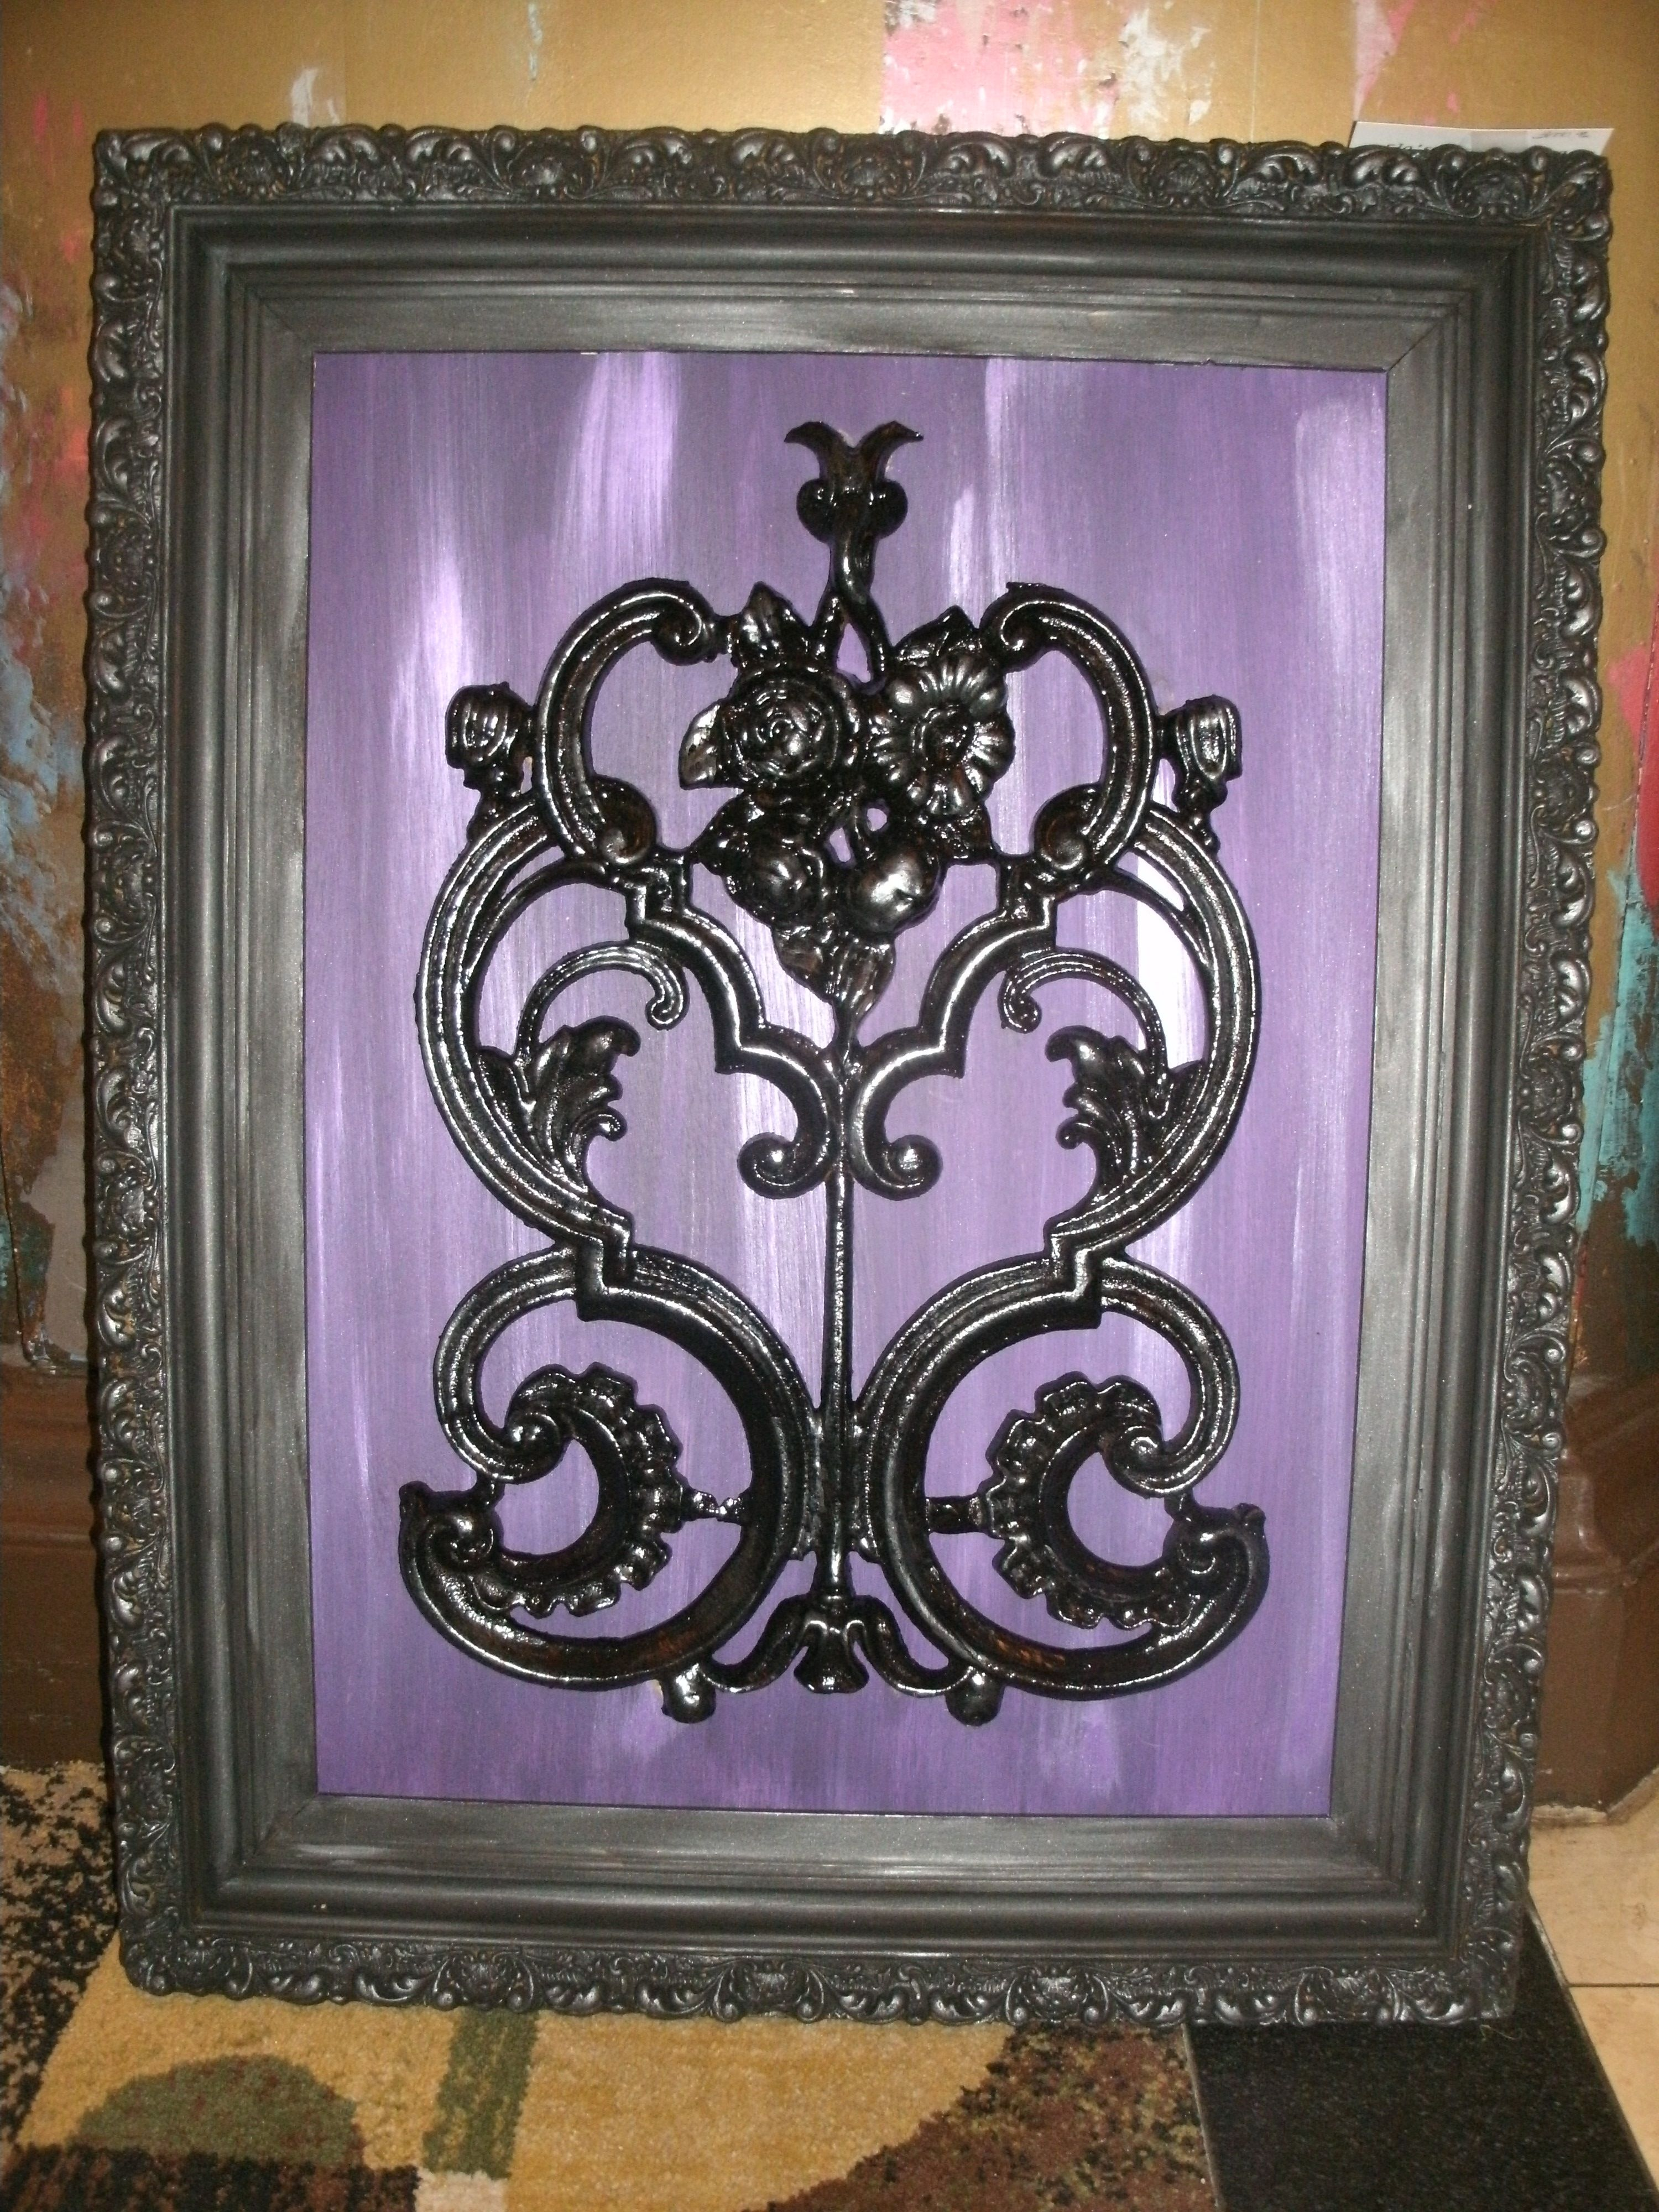 Old piece of Iron work mounted on a painted board and framed with vintage frame